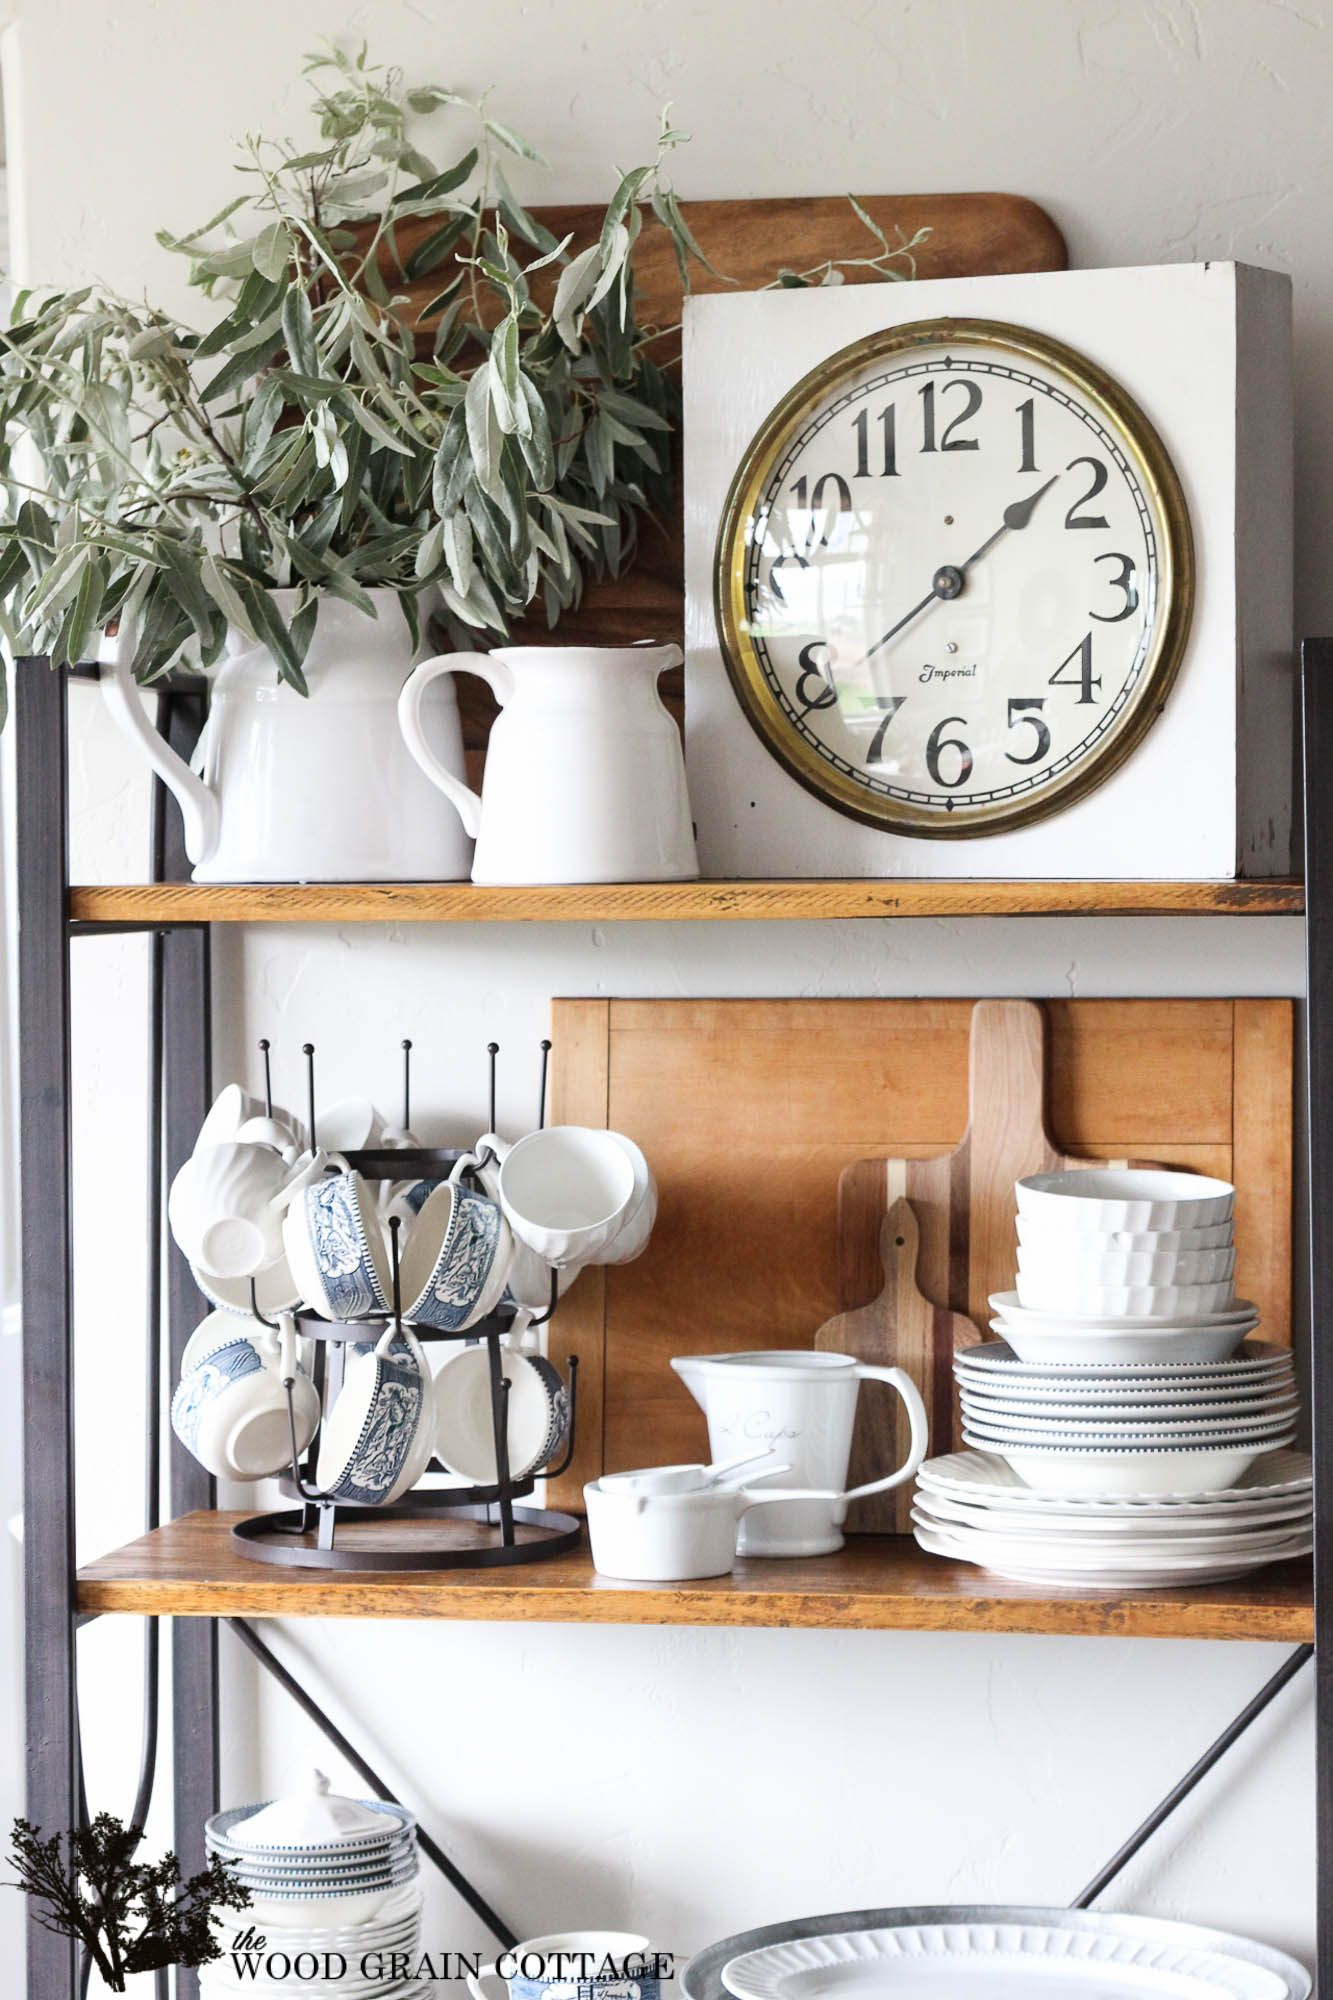 Vintage kitchen clock on shelves